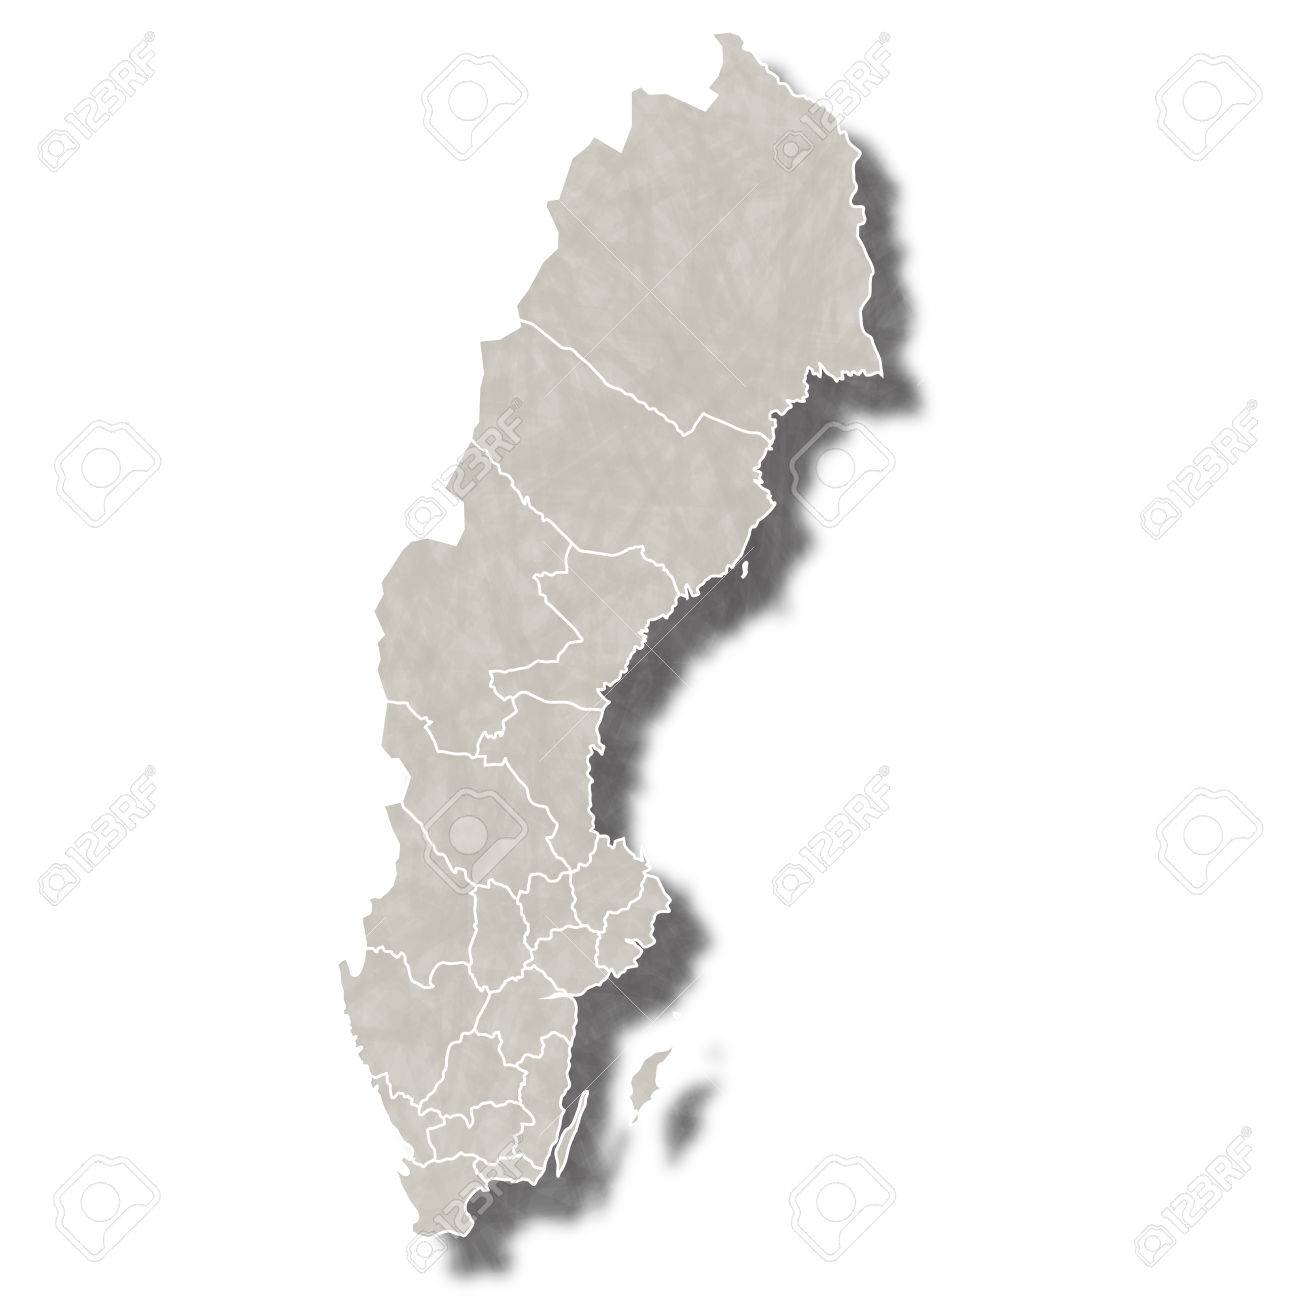 Sweden Map City Icon Royalty Free Cliparts Vectors And Stock - Sweden map city